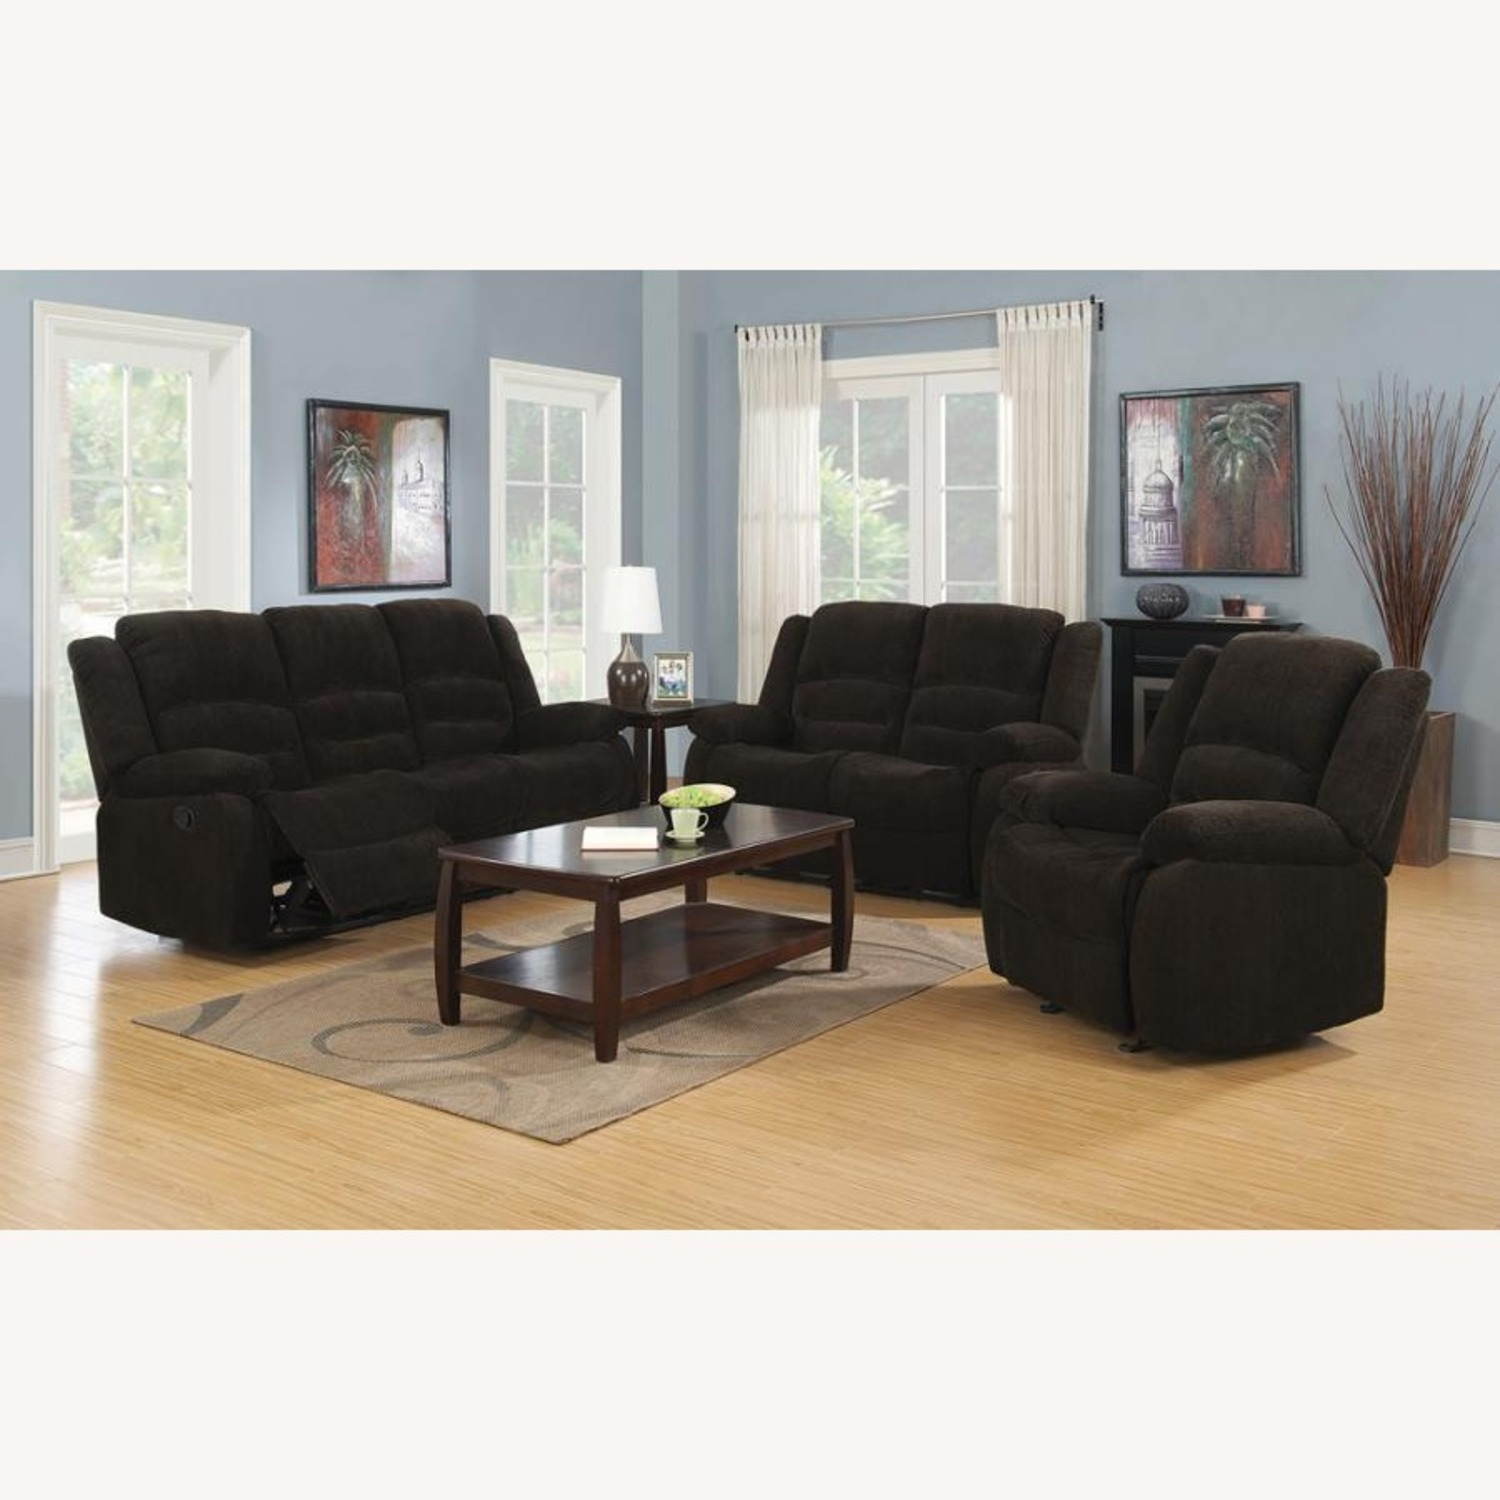 Glider Recliner In Chocolate Chenille Fabric - image-3